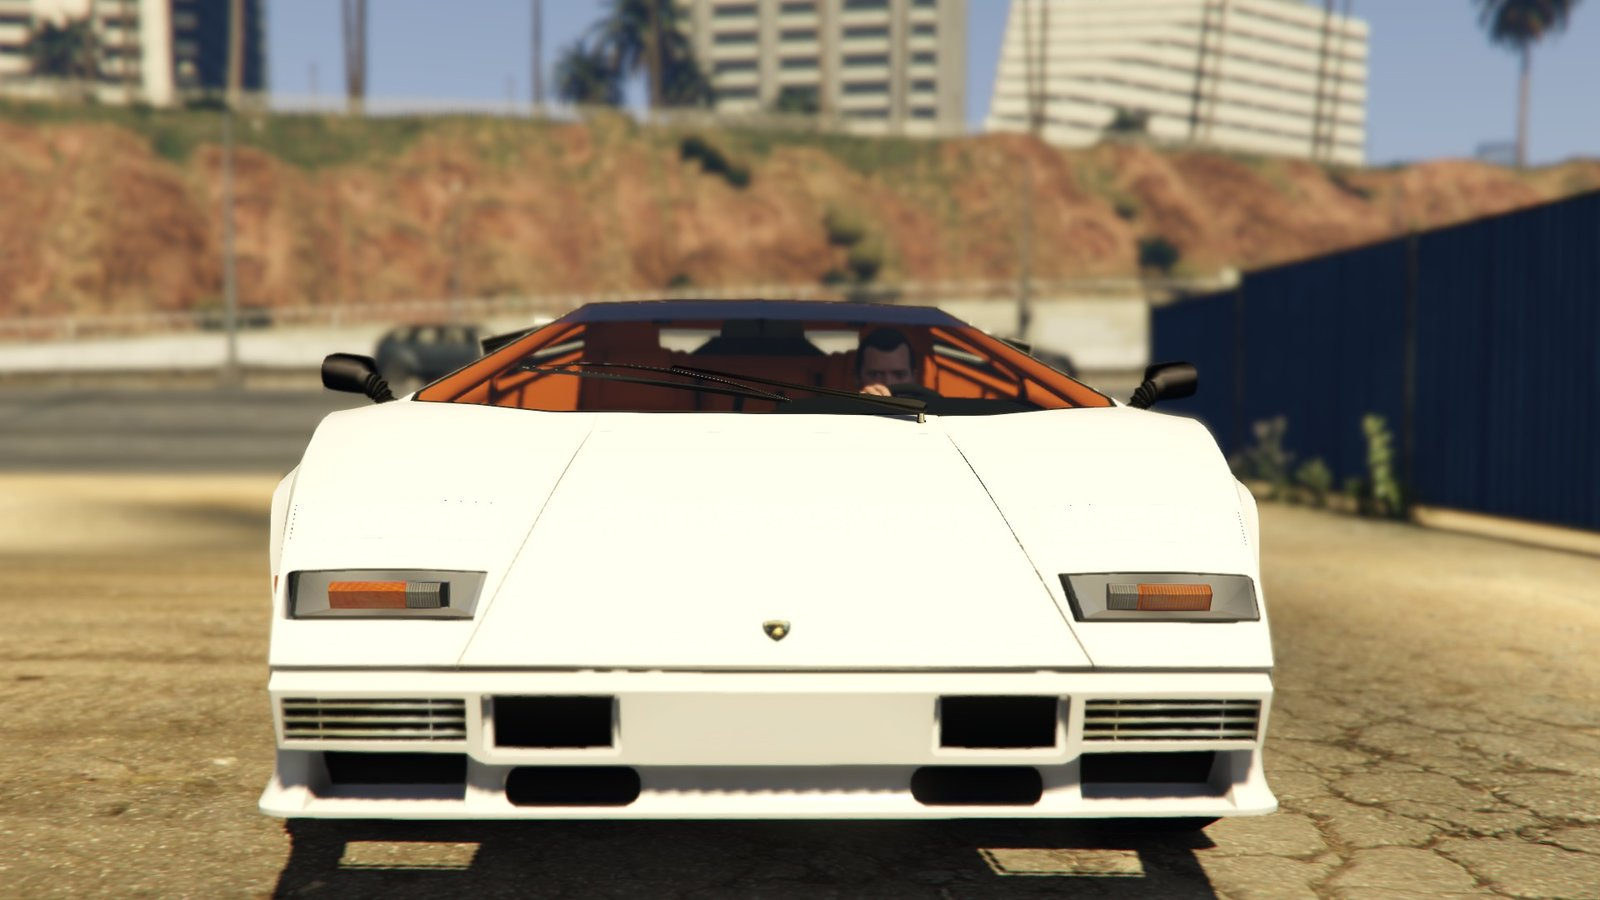 lamborghini countach lp500 qv 1988 vehicules pour gta v sur gta modding. Black Bedroom Furniture Sets. Home Design Ideas